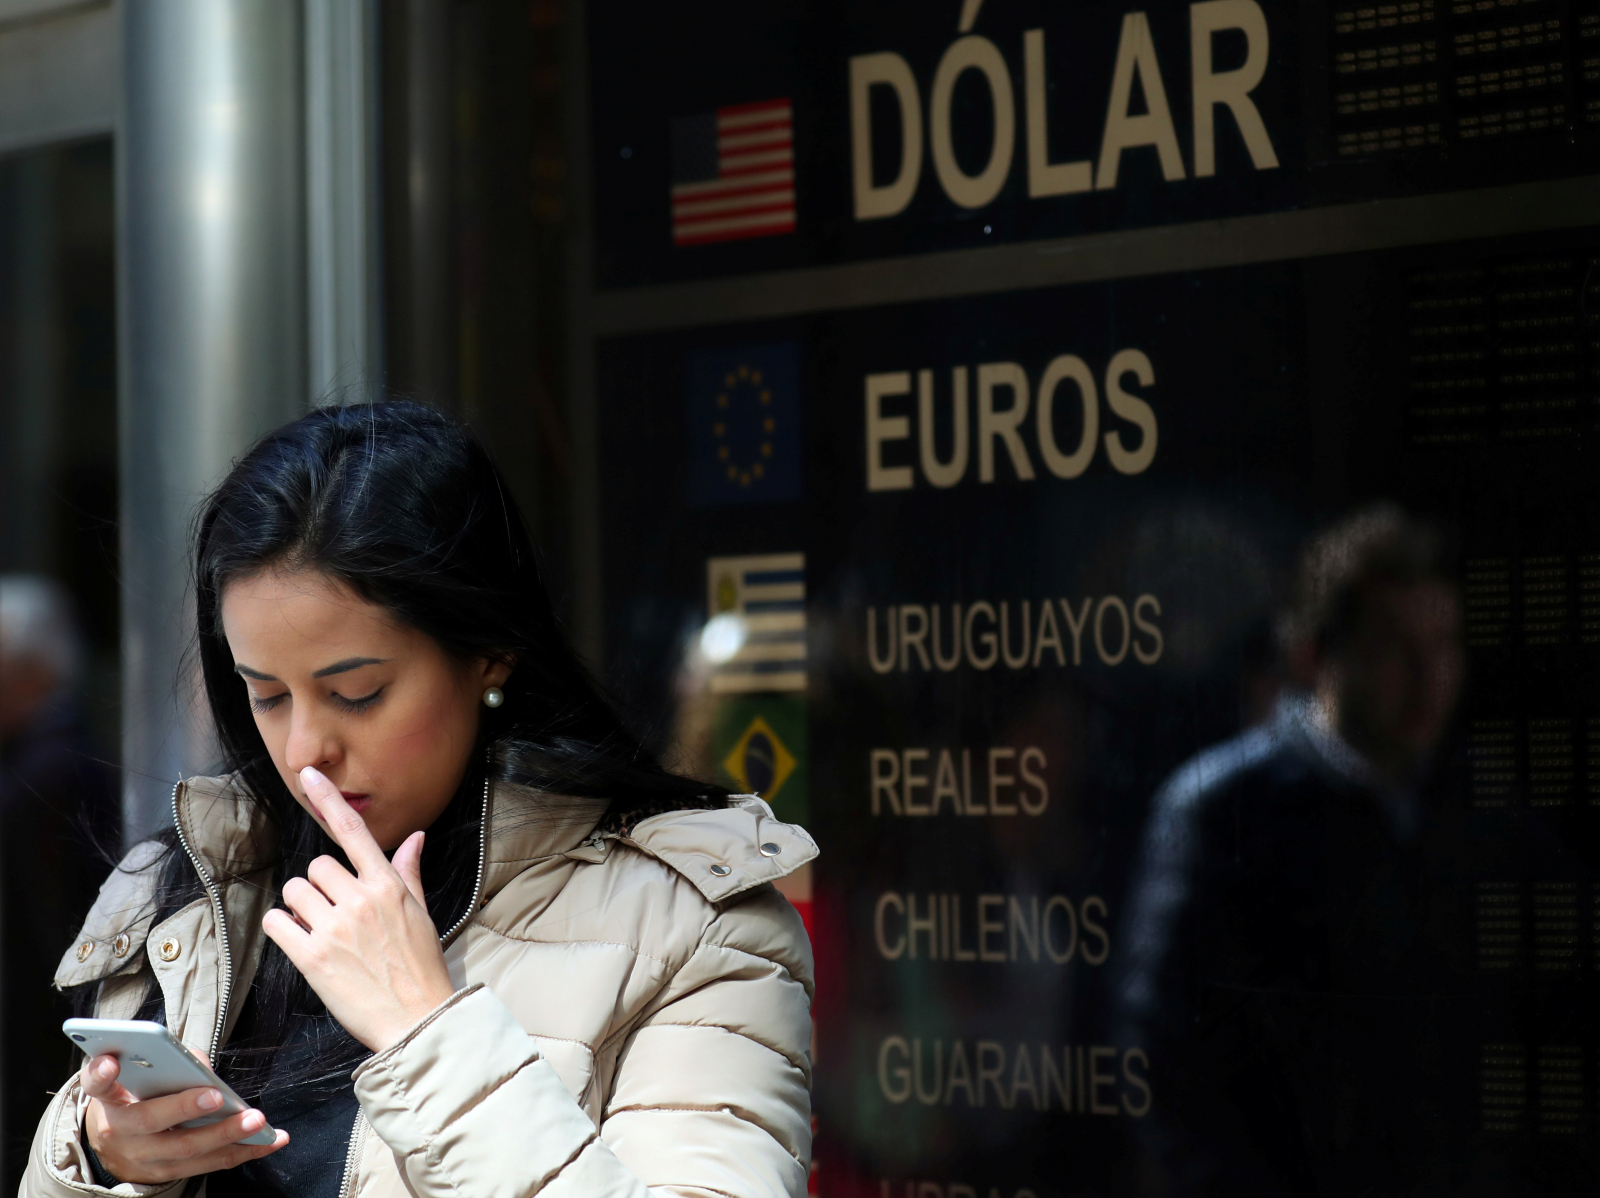 Argentina currency market